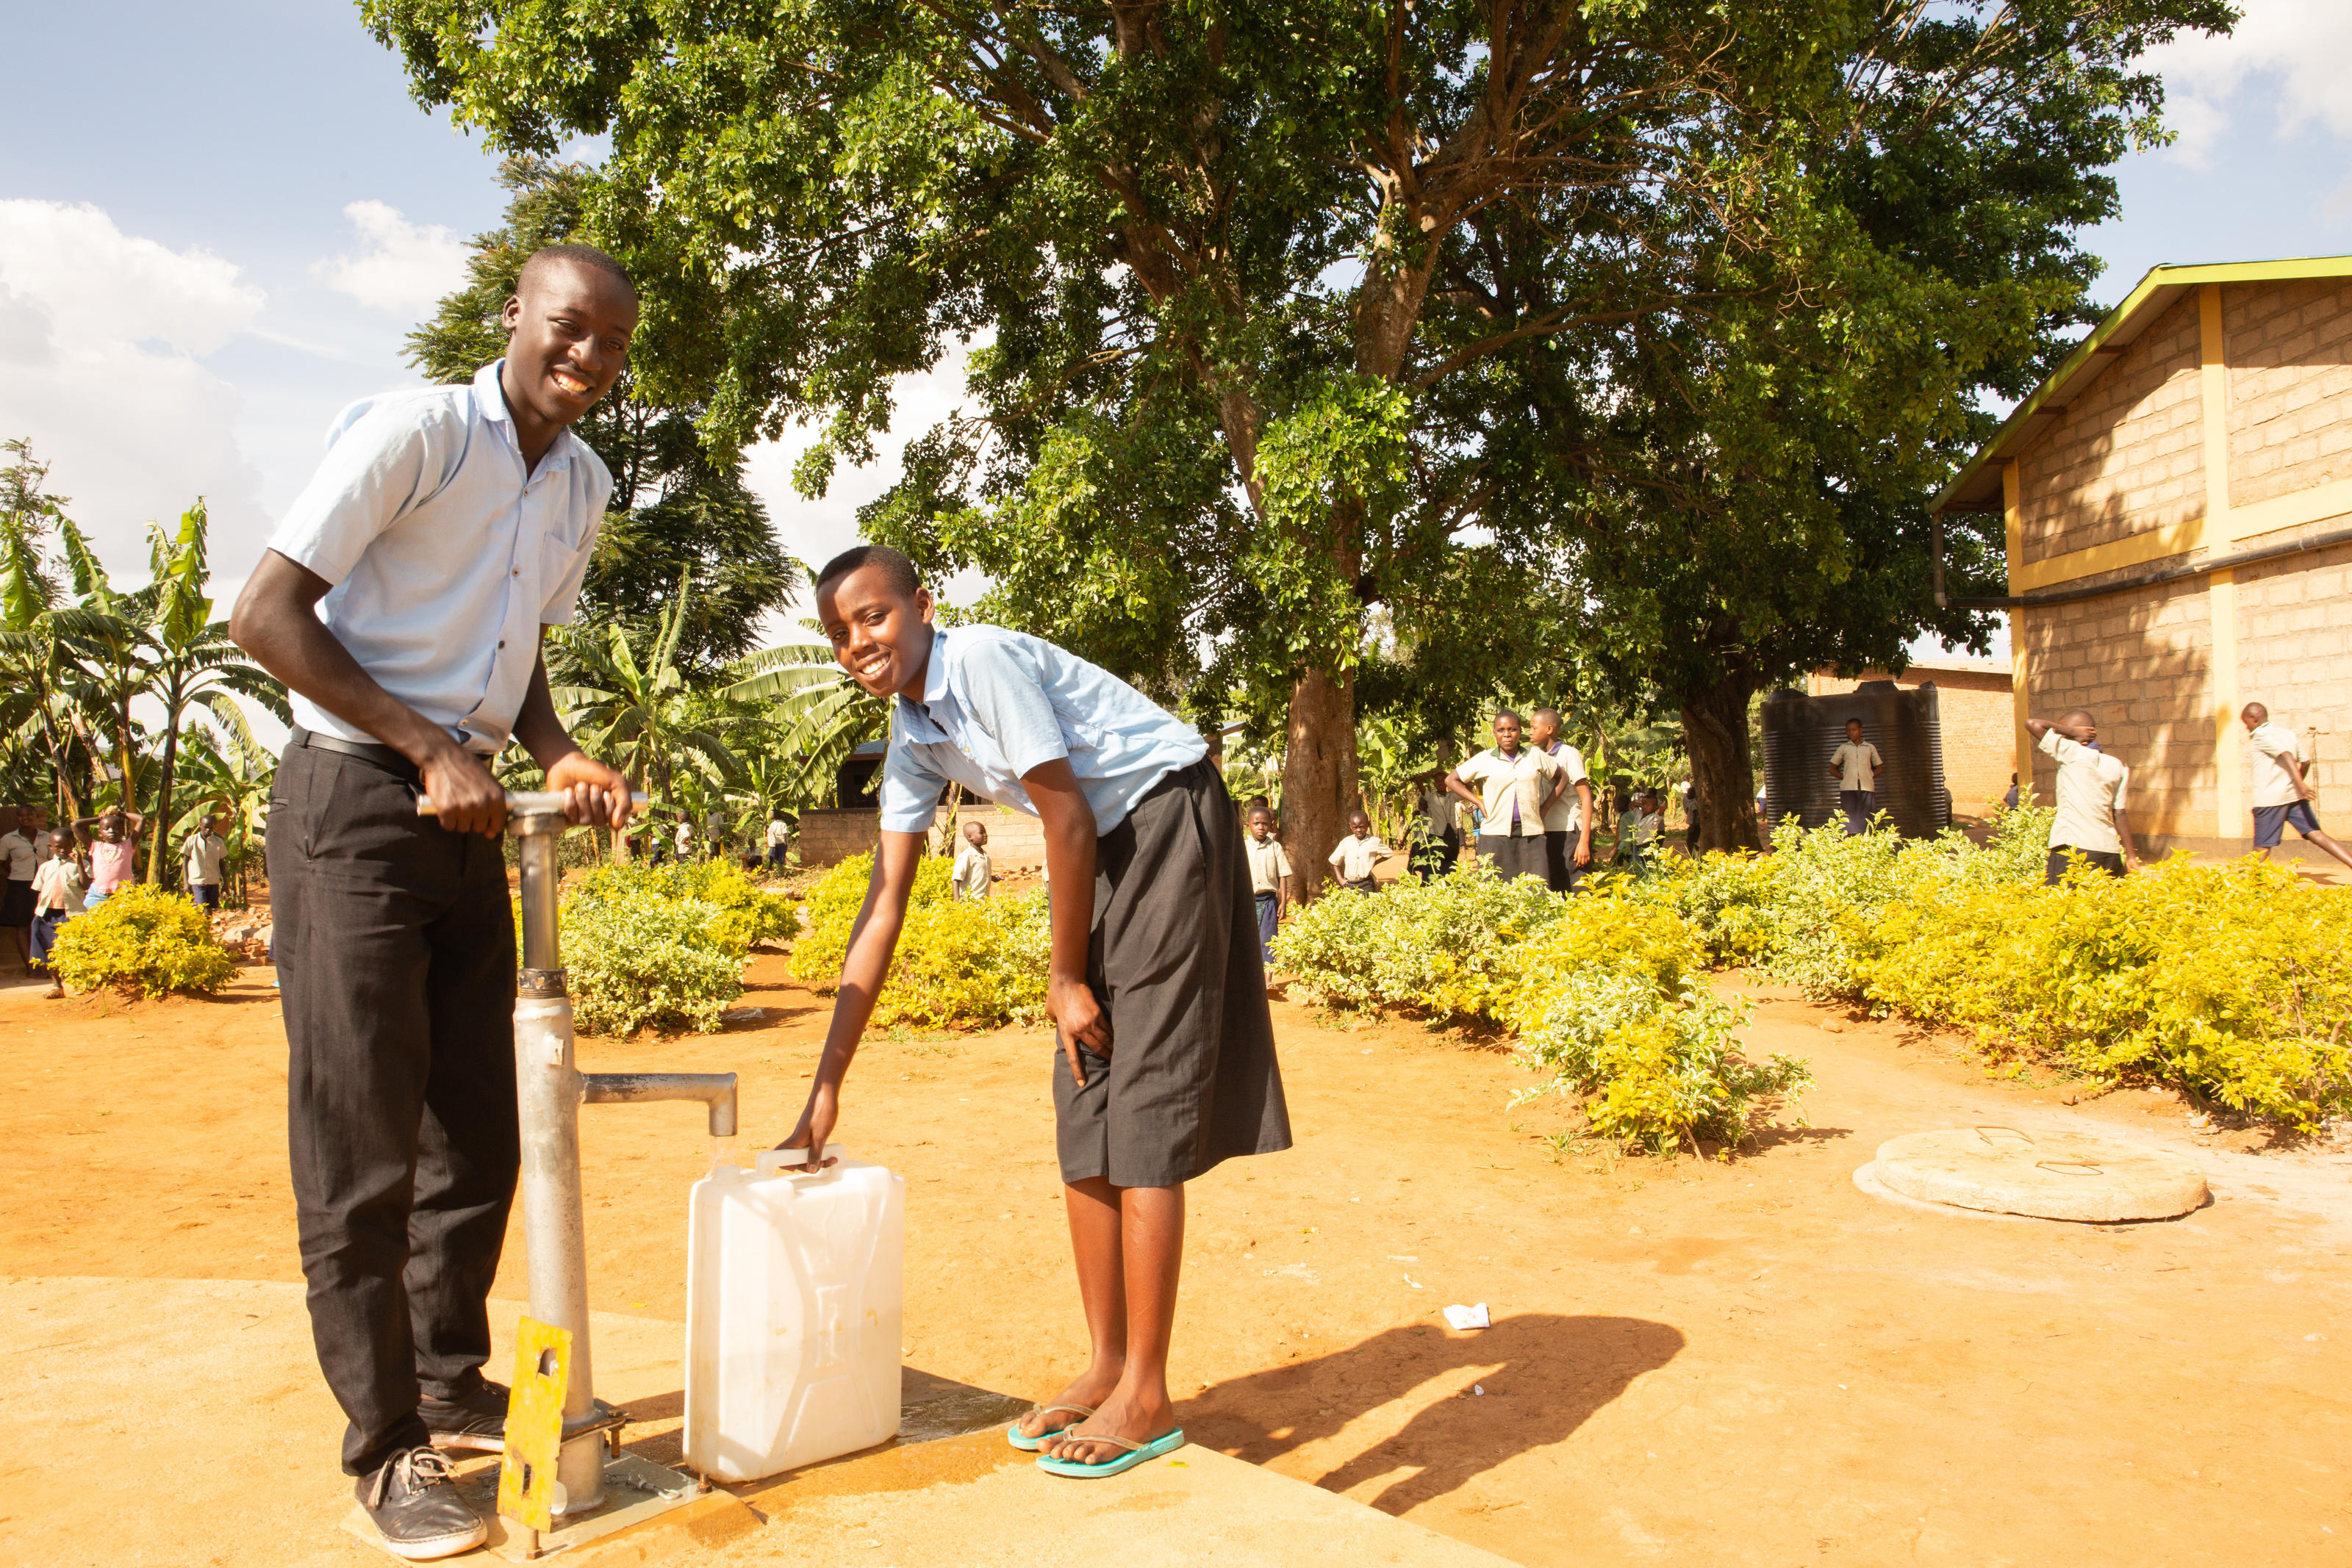 Twizeyimana Jean Bosco, 17, and his sister Claire Murekatete, 15, collecting water from new rain water harvesting tank, Rwanda, October, 2018.